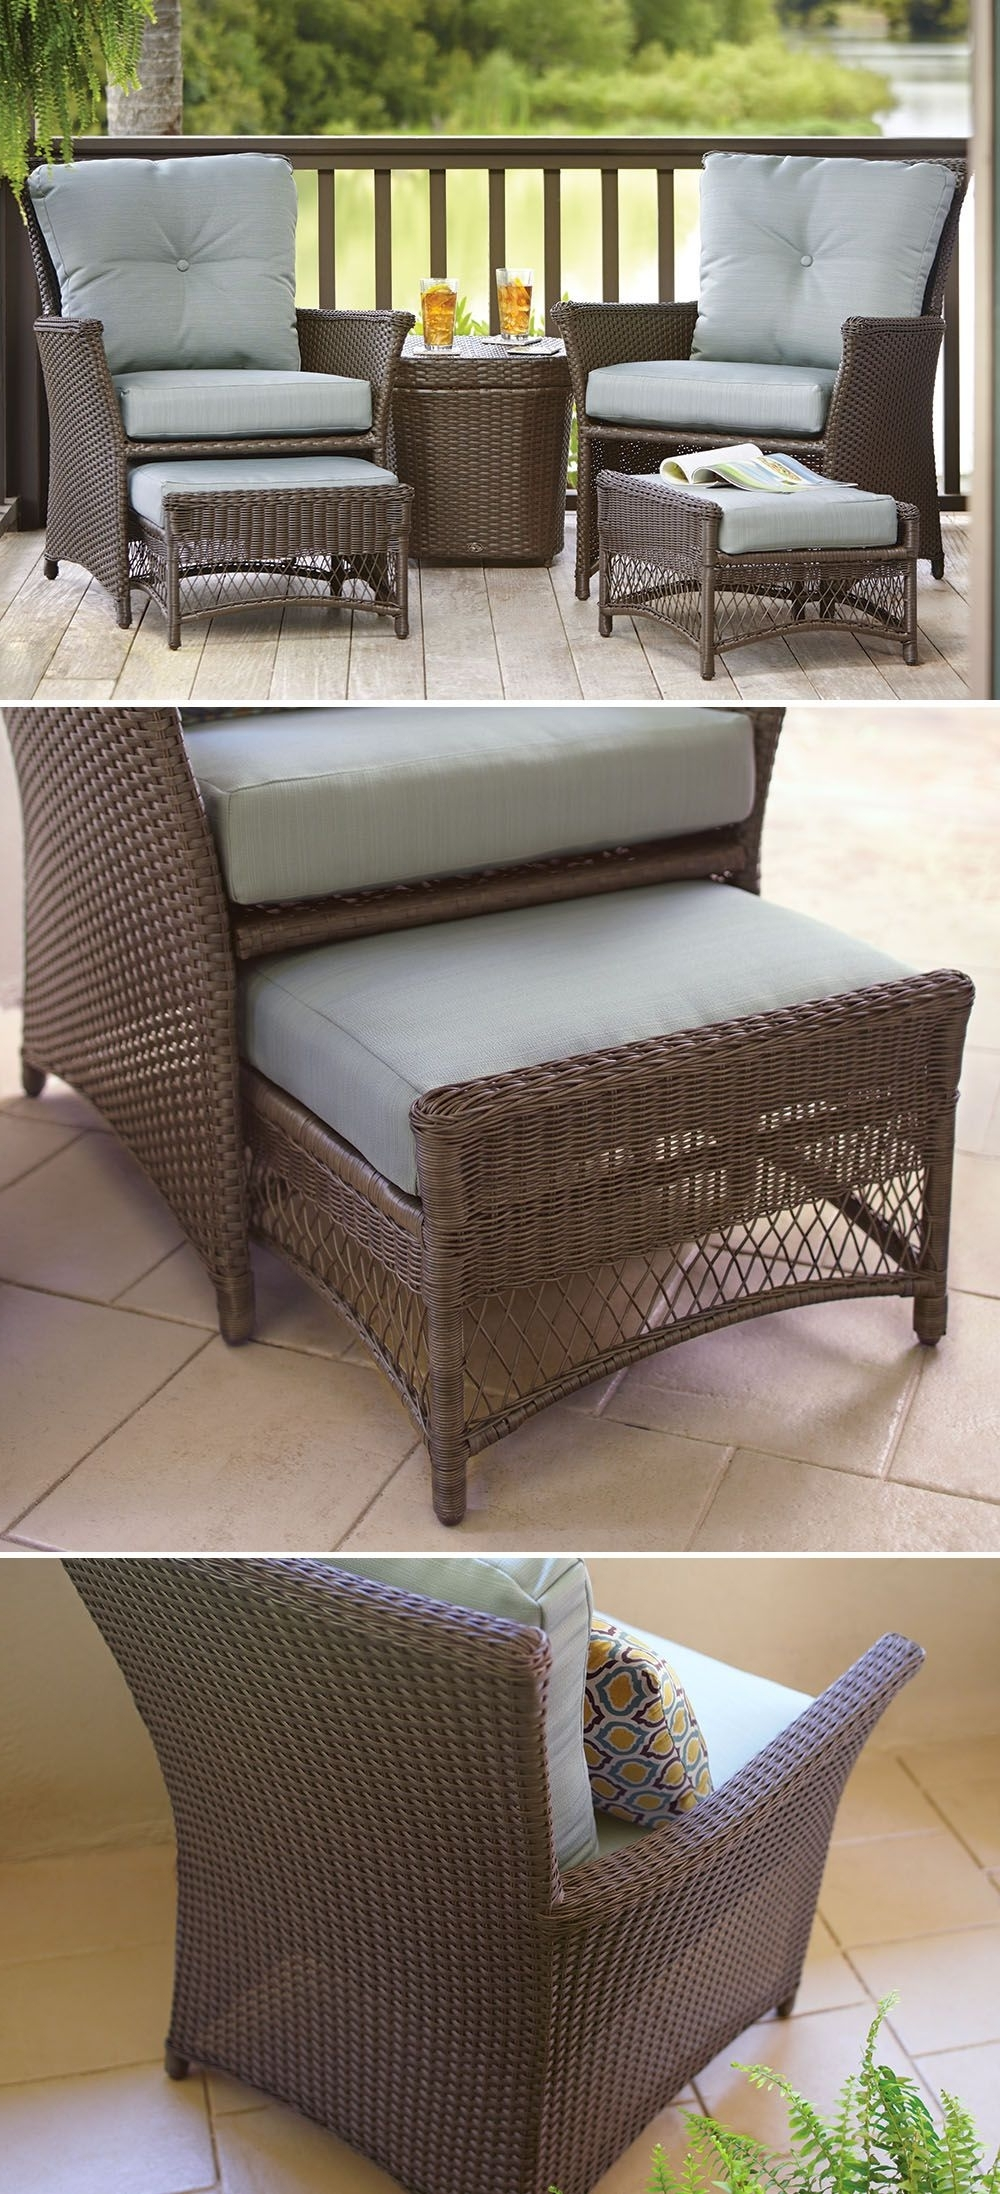 This Affordable Patio Set Is Just The Right Size For Your Small Regarding Famous Patio Conversation Sets With Ottomans (View 14 of 15)